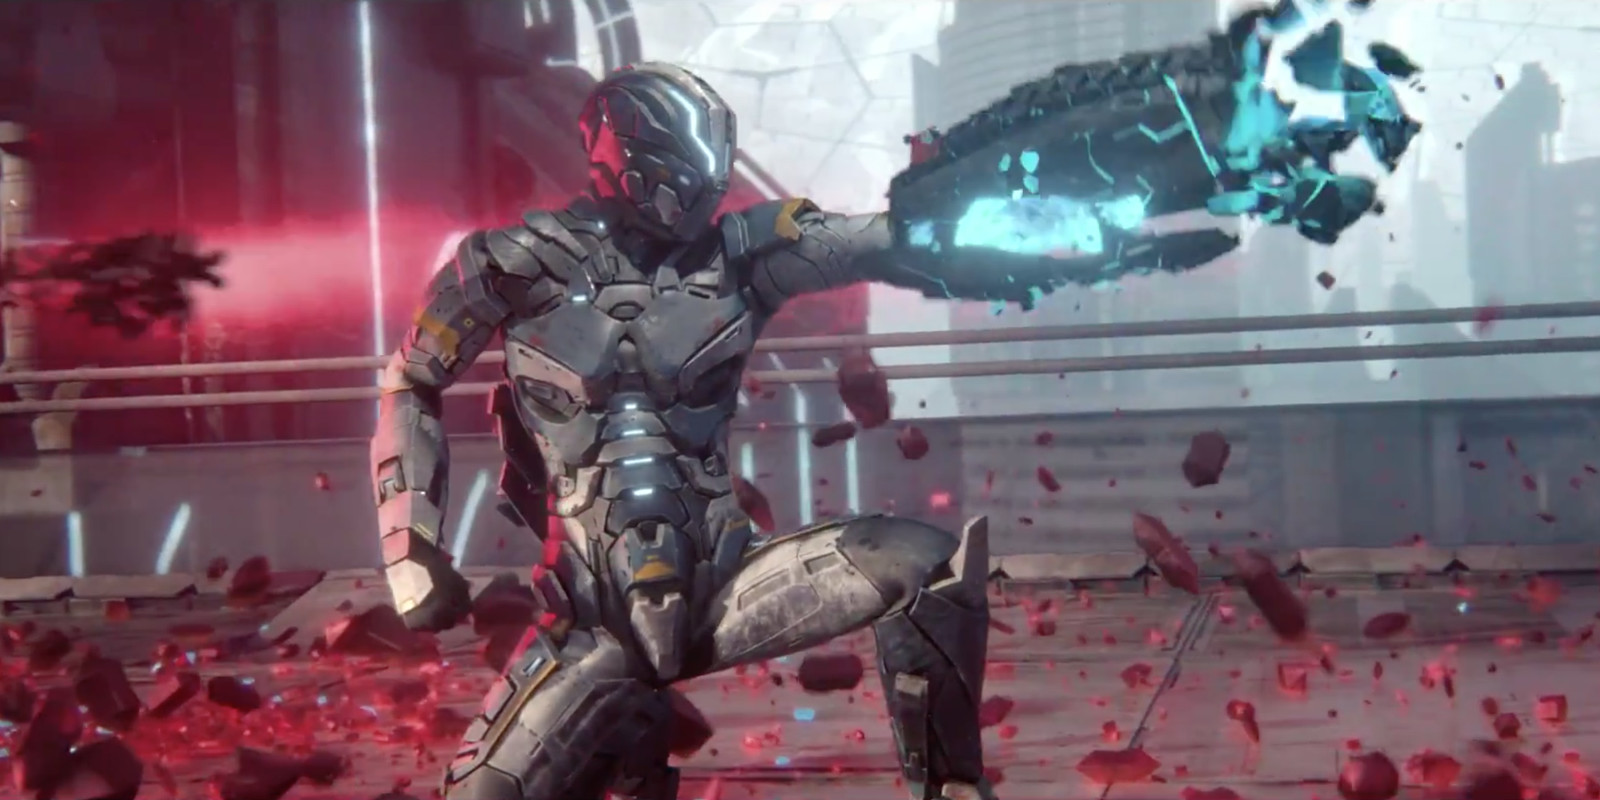 Housemarque's upcoming shooter Matterfall is coming out this August for the PS4 screenshot